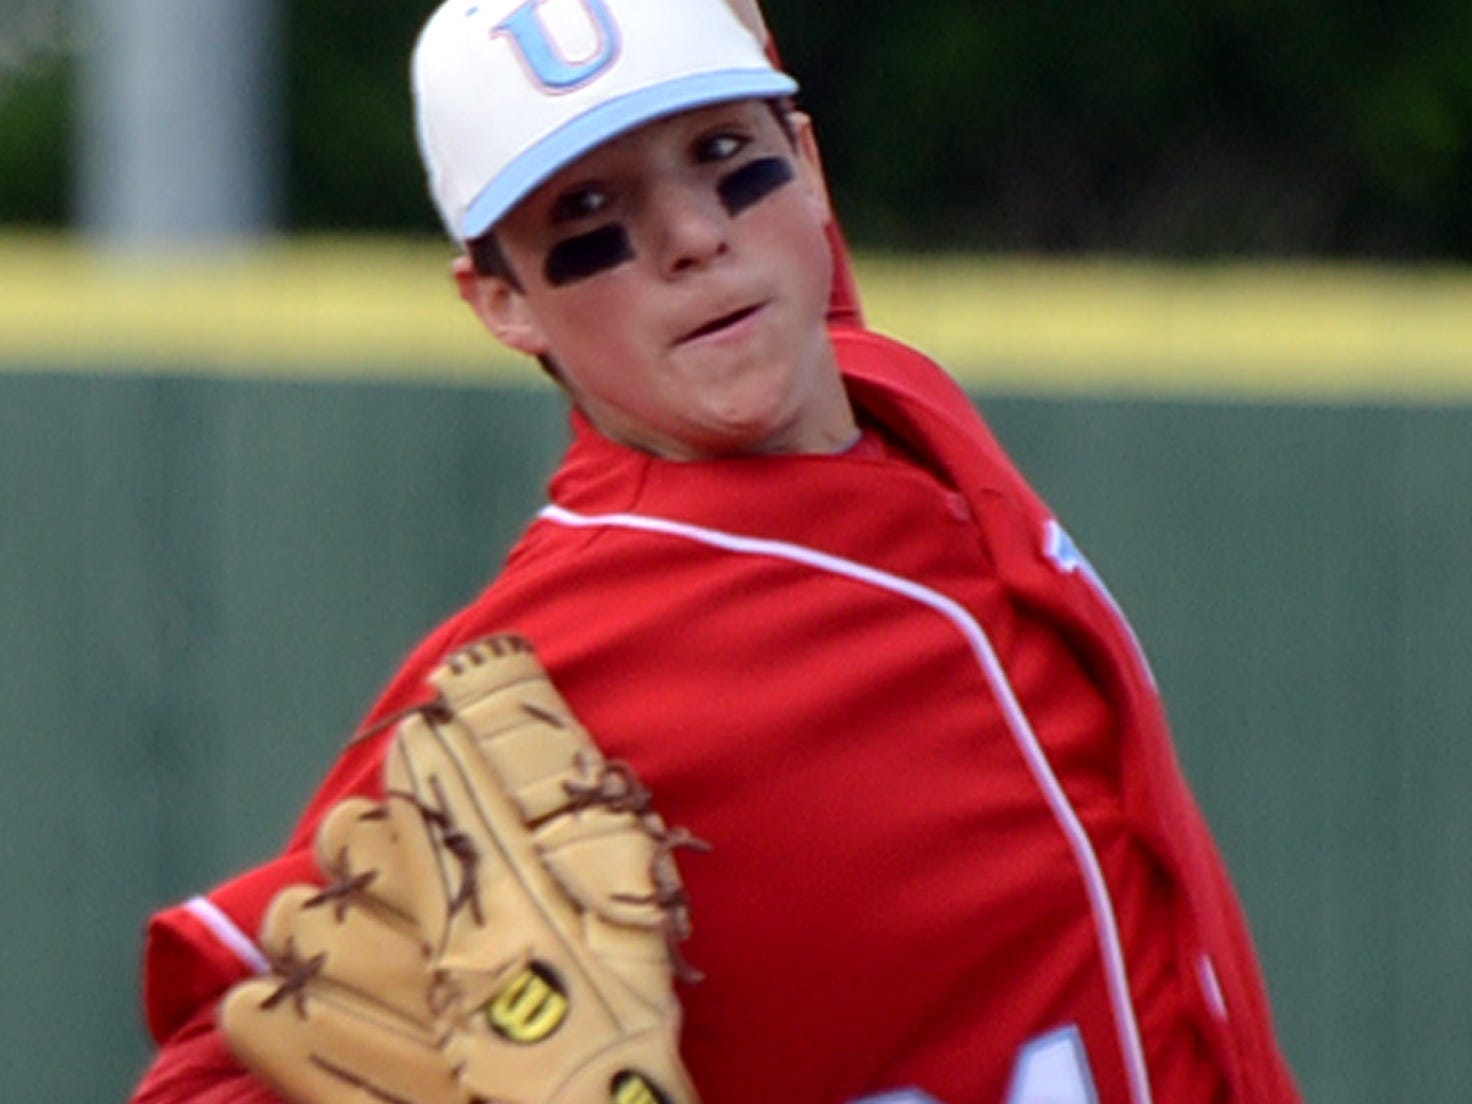 University School of Jackson junior pitcher Ryan Rolison has committed to play baseball at Ole Miss.